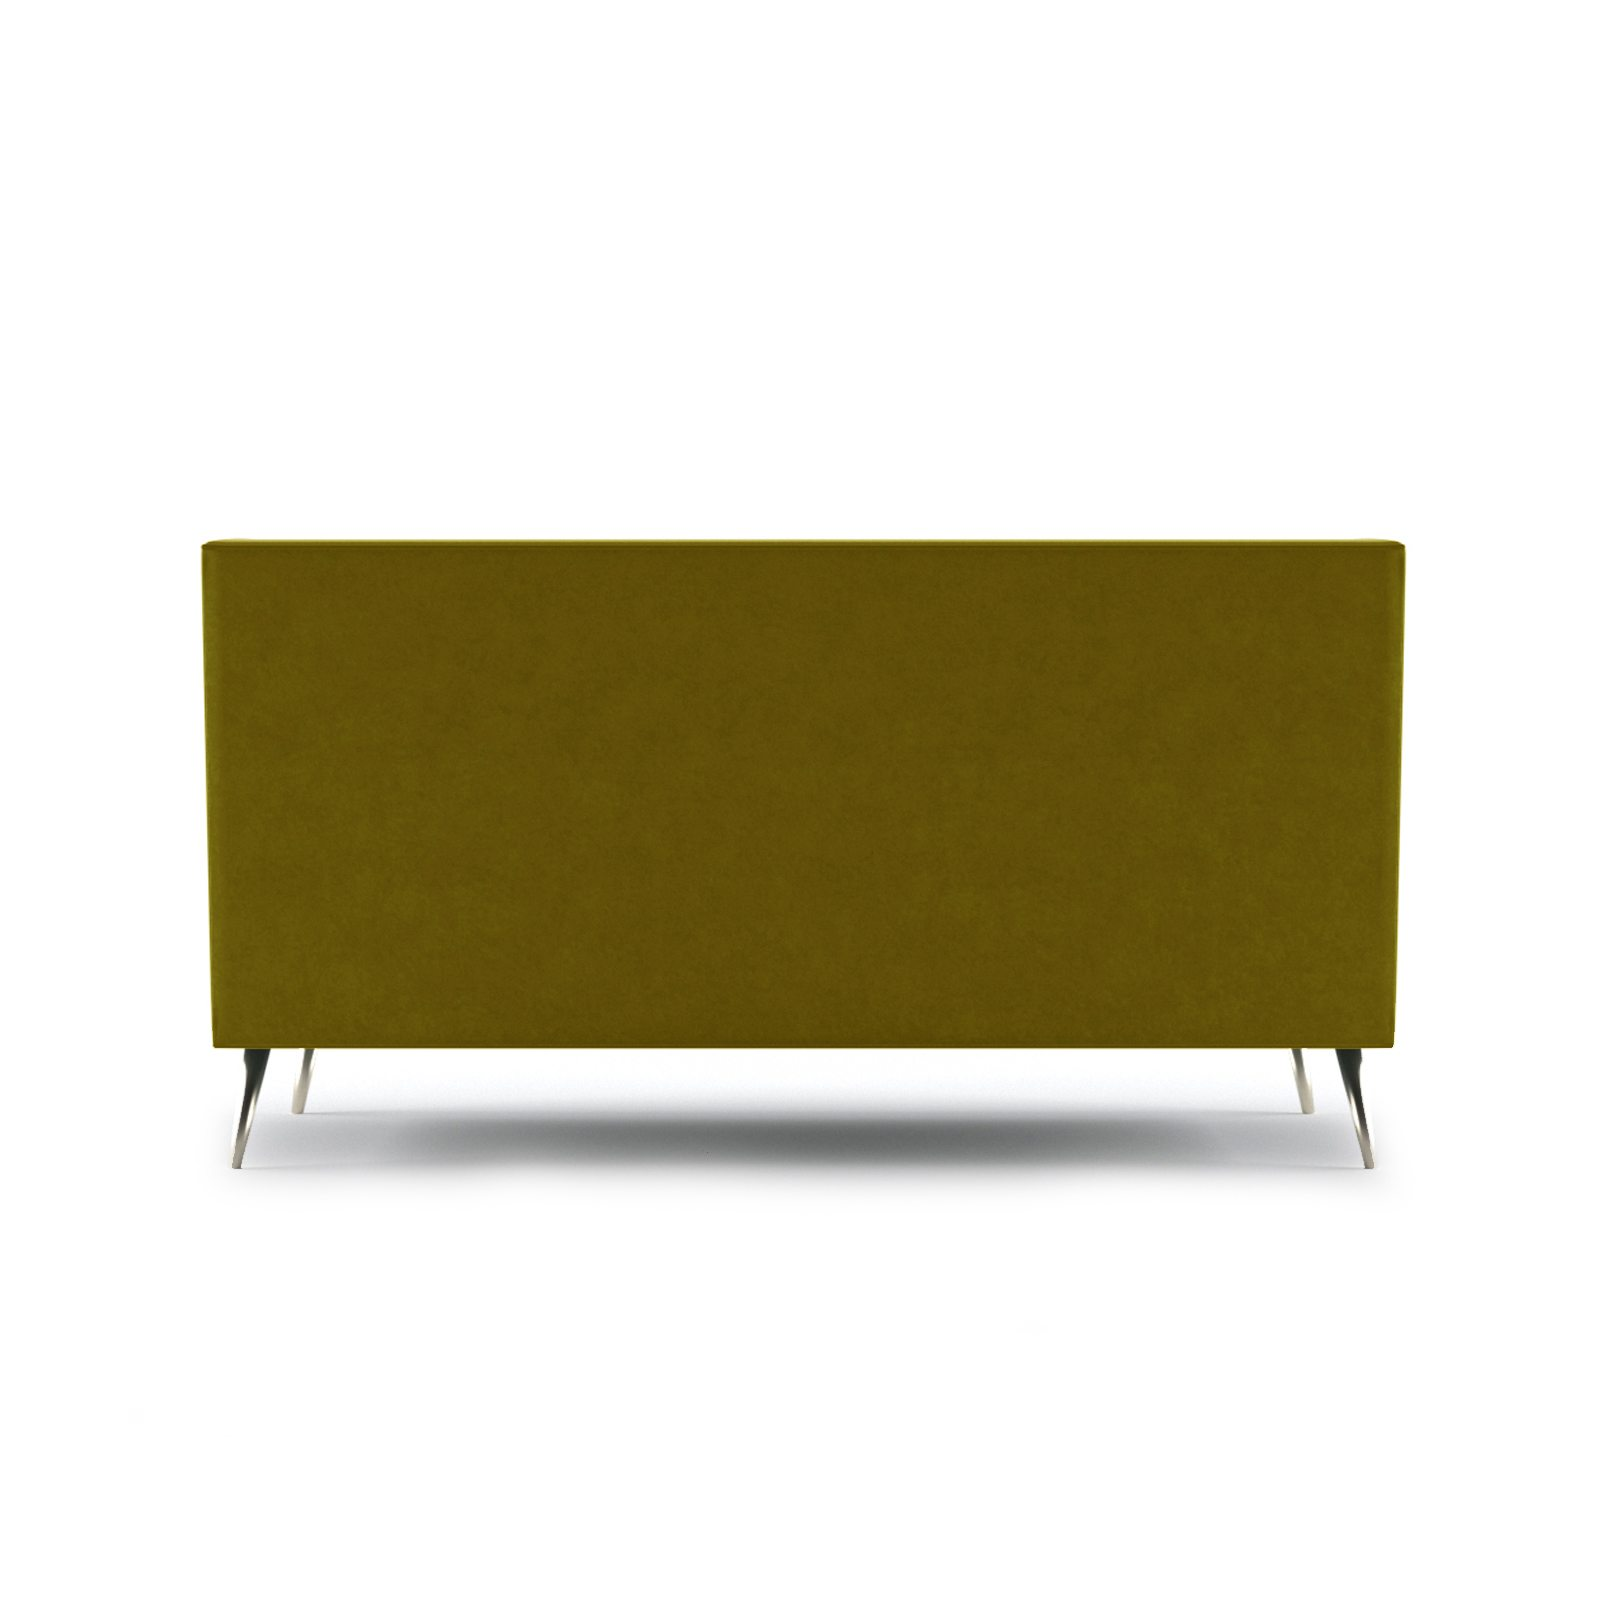 Connick Two Seater Sofa by Bonham & Bonham Gold 07